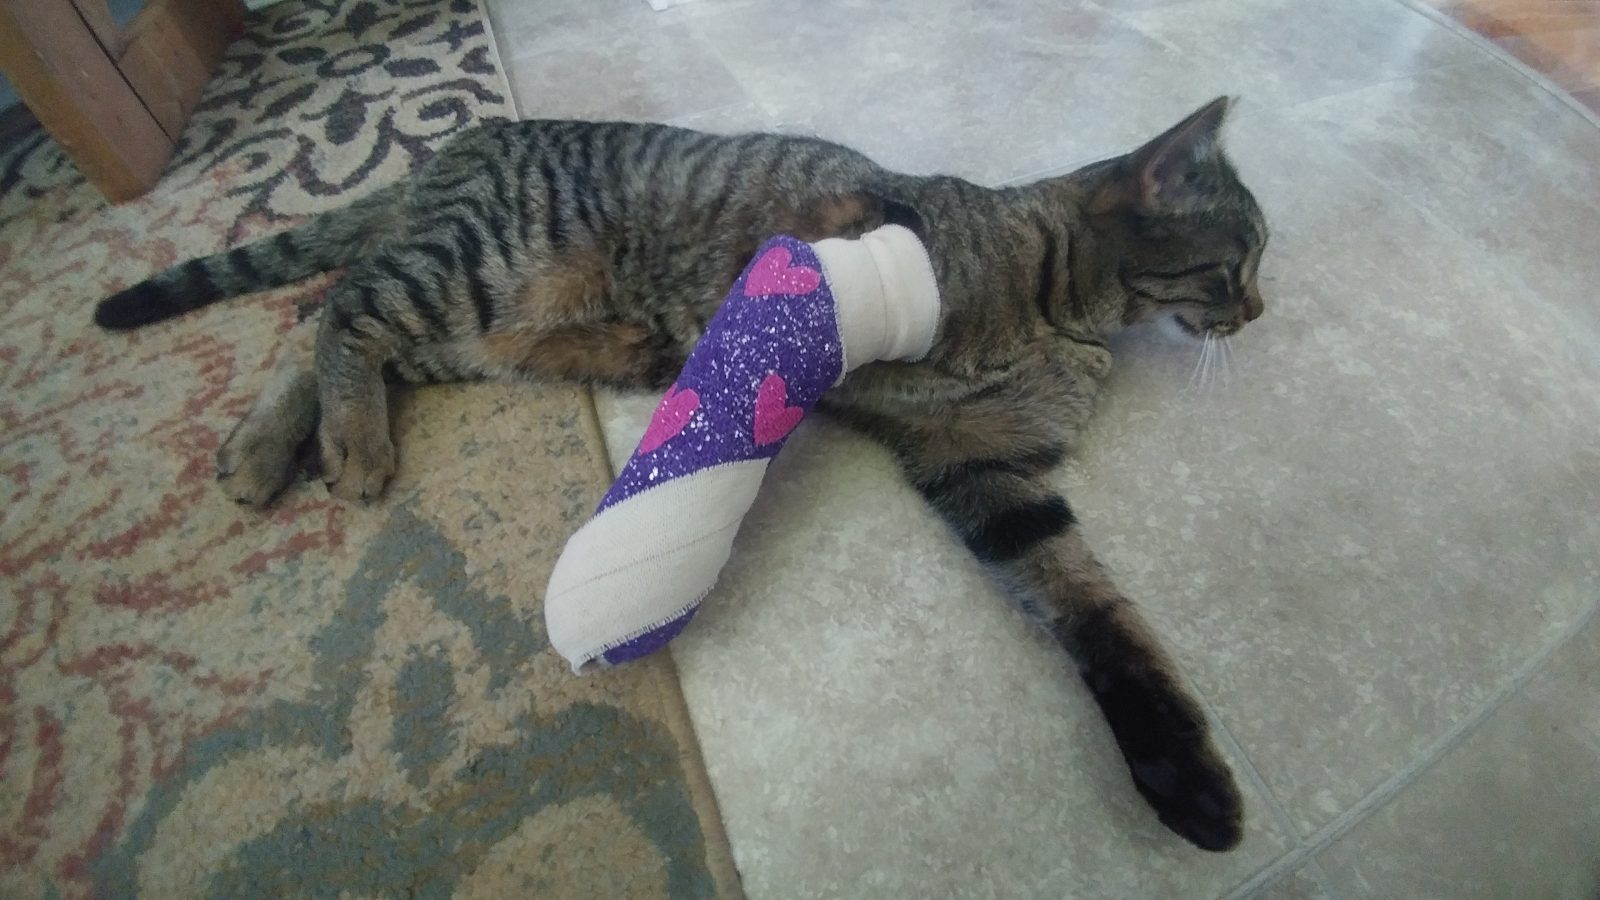 Joshua Mueller's cat was injured after getting caught in a large trap. (Photo provided by Joshua Mueller)